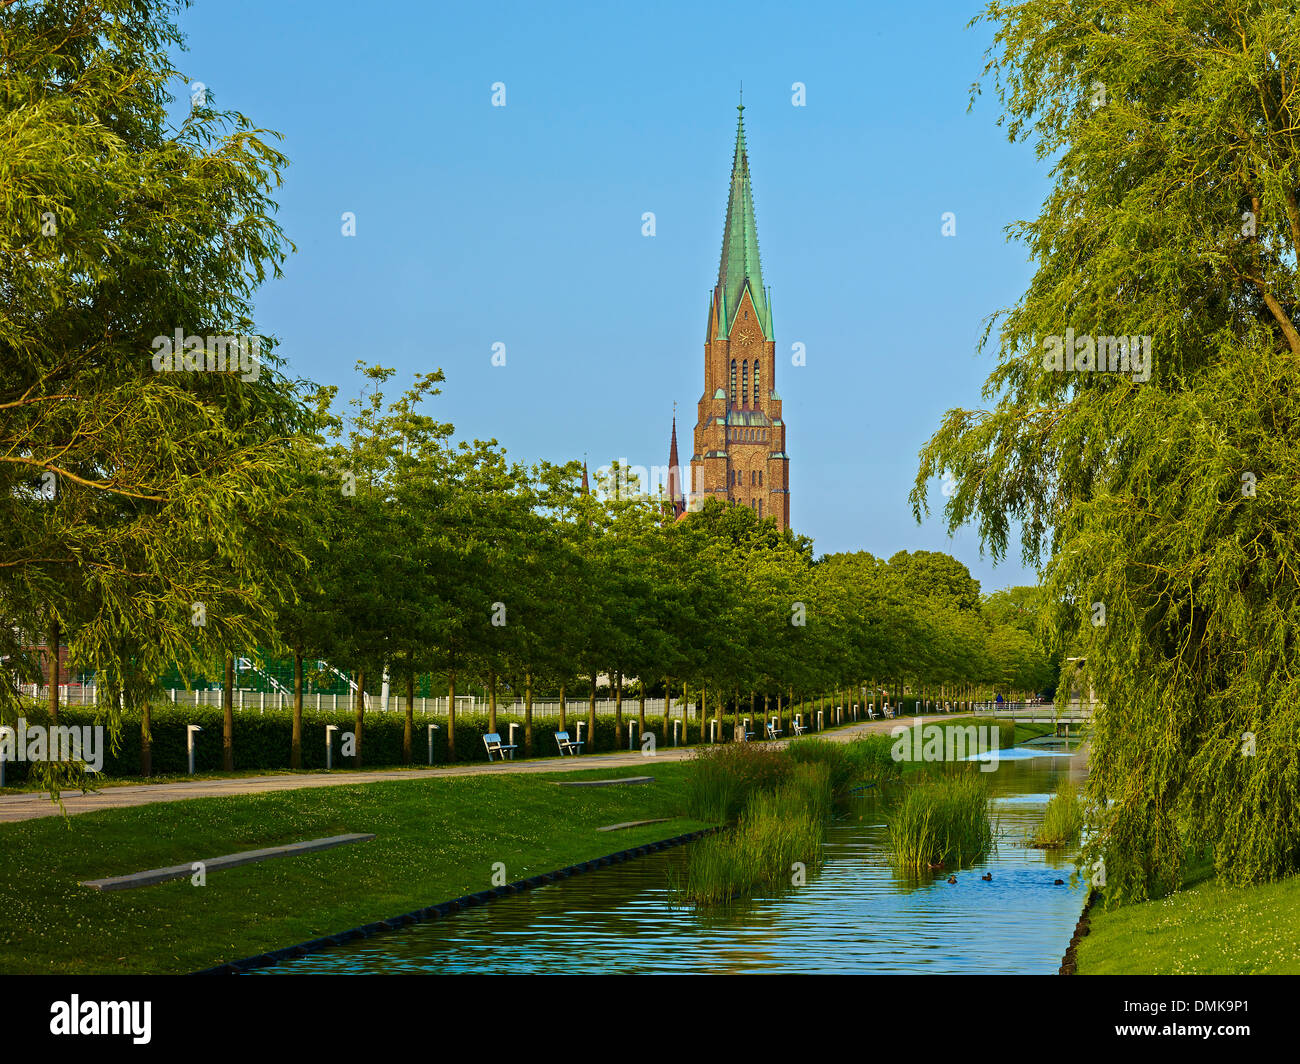 St. Peter Cathedral in Schleswig, Schleswig-Flensburg District , Schleswig-Holstein, Germany - Stock Image